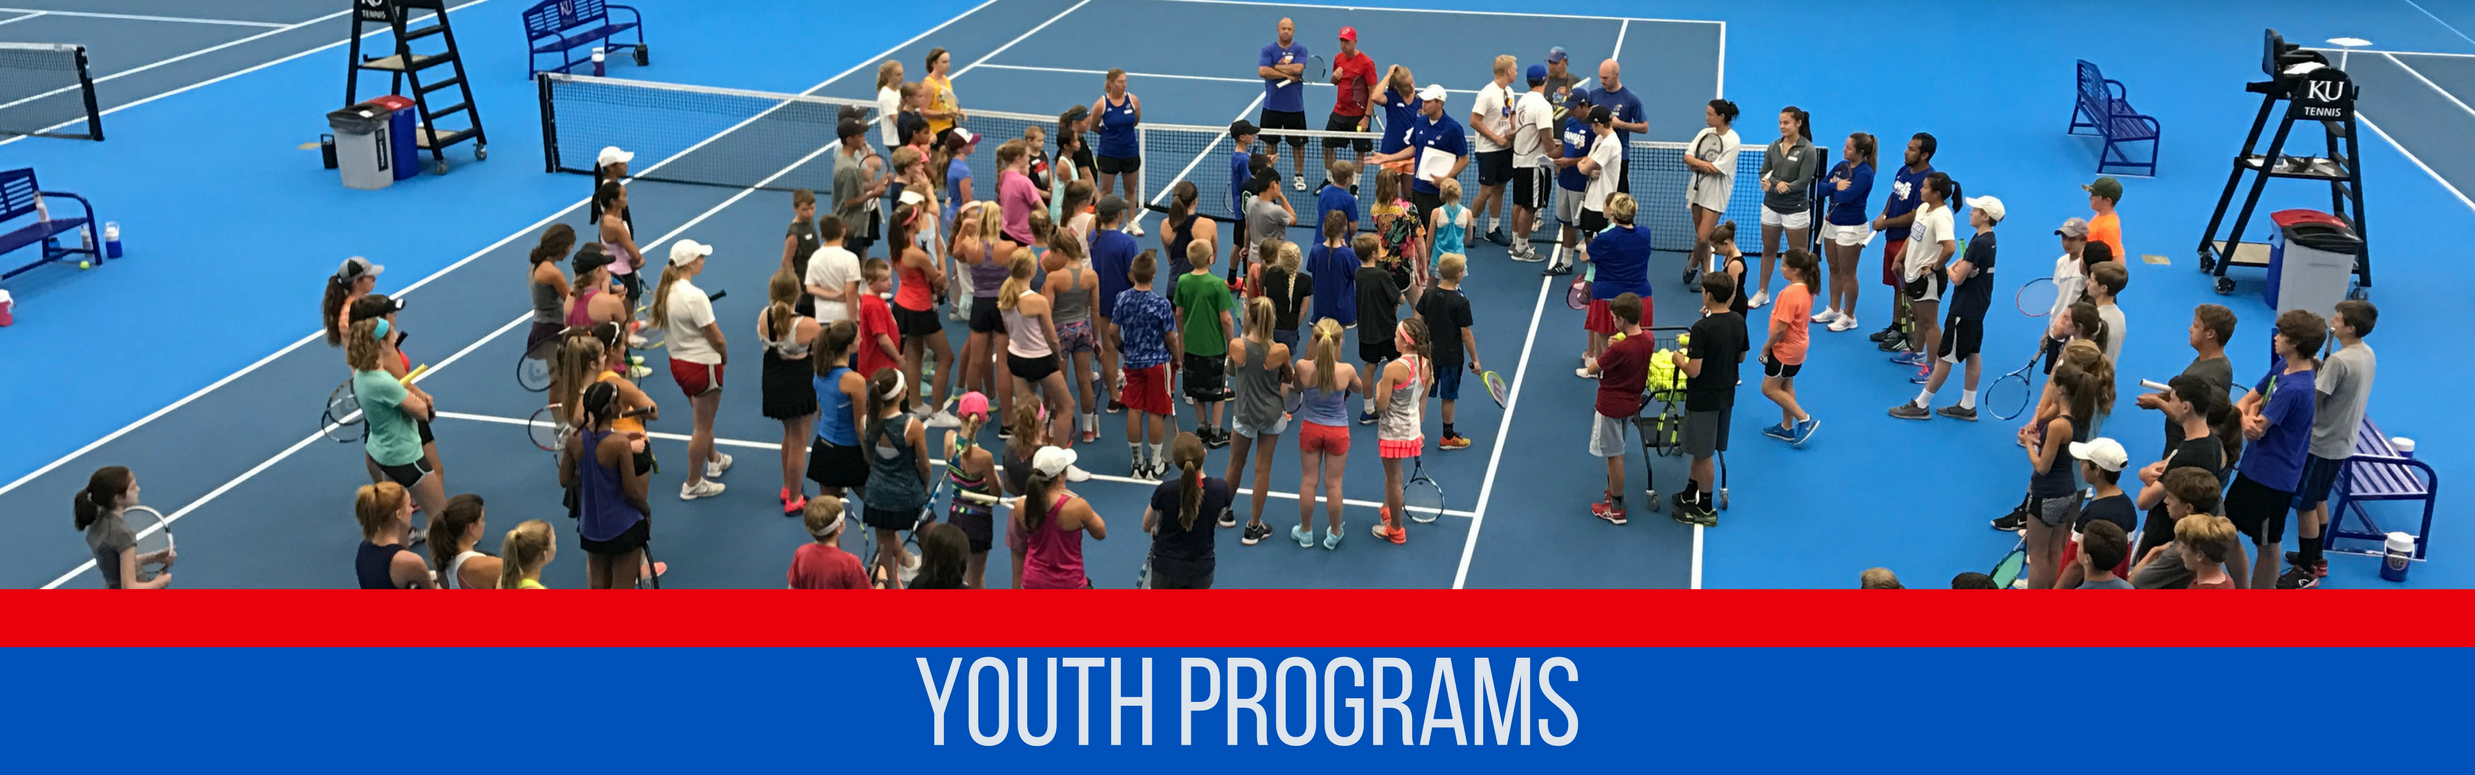 kansas-youth-tennis-academy